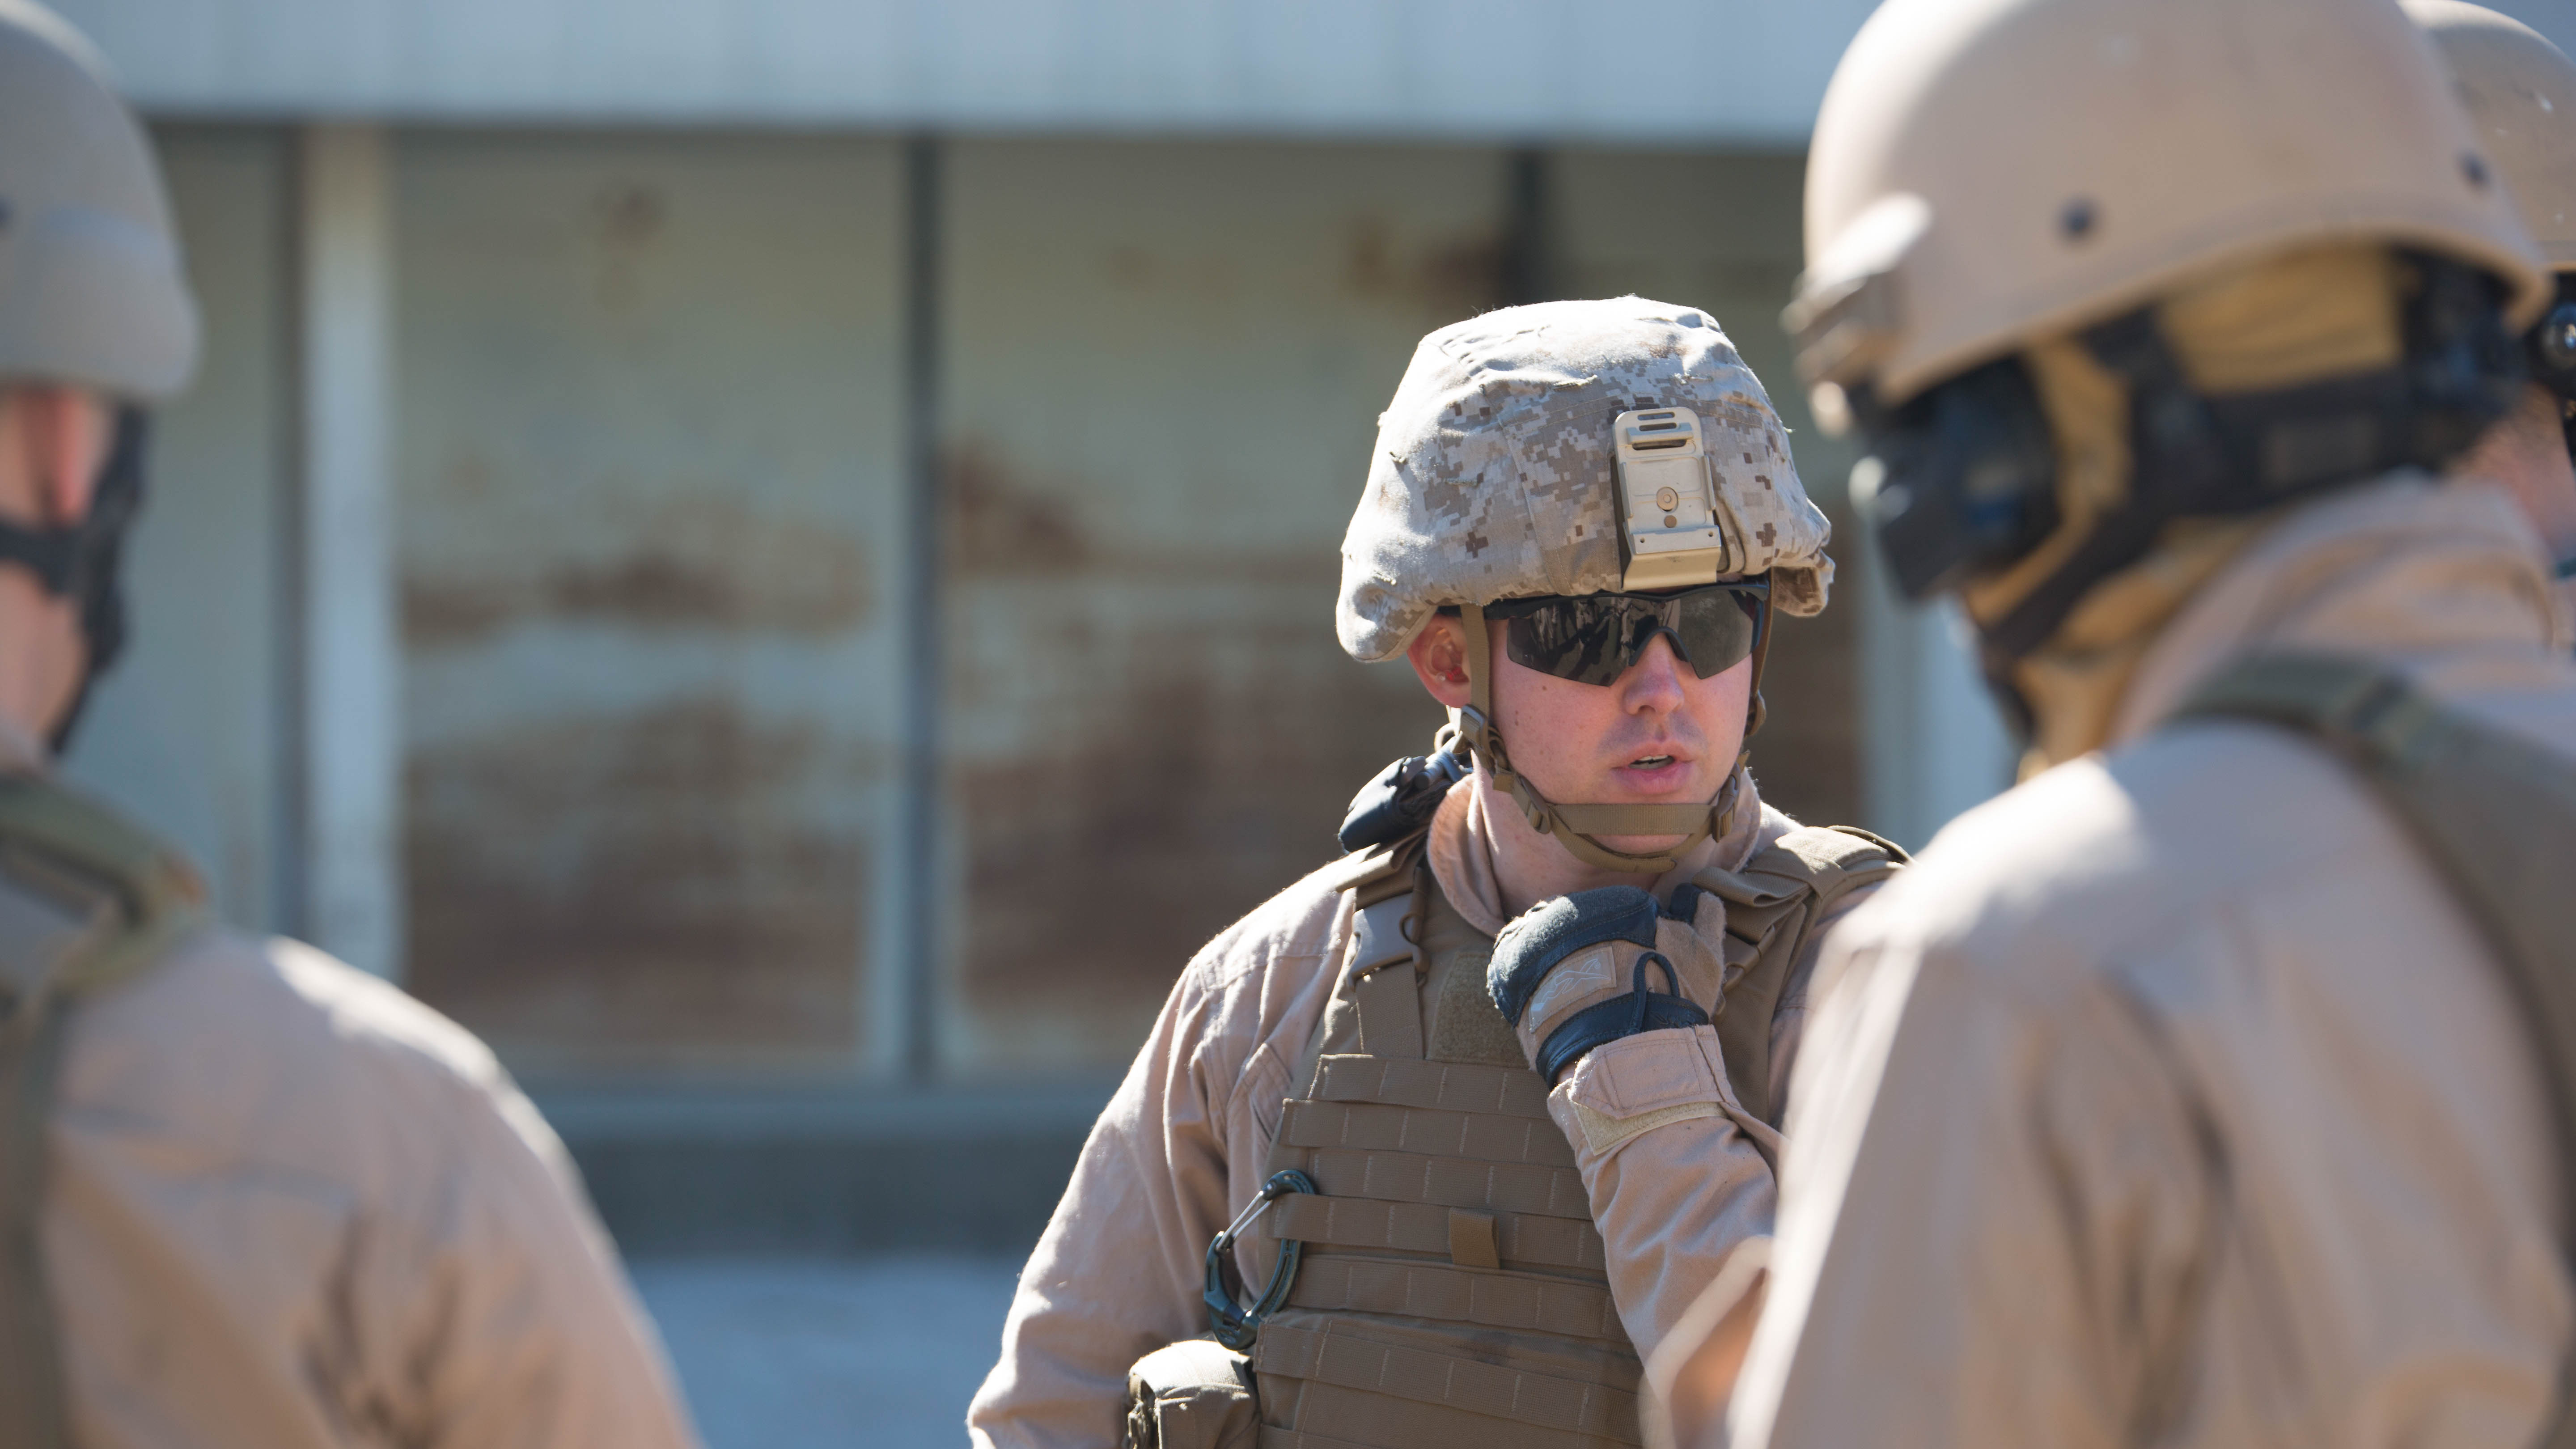 Eod Conducts Breaching Course Gt United States Marine Corps